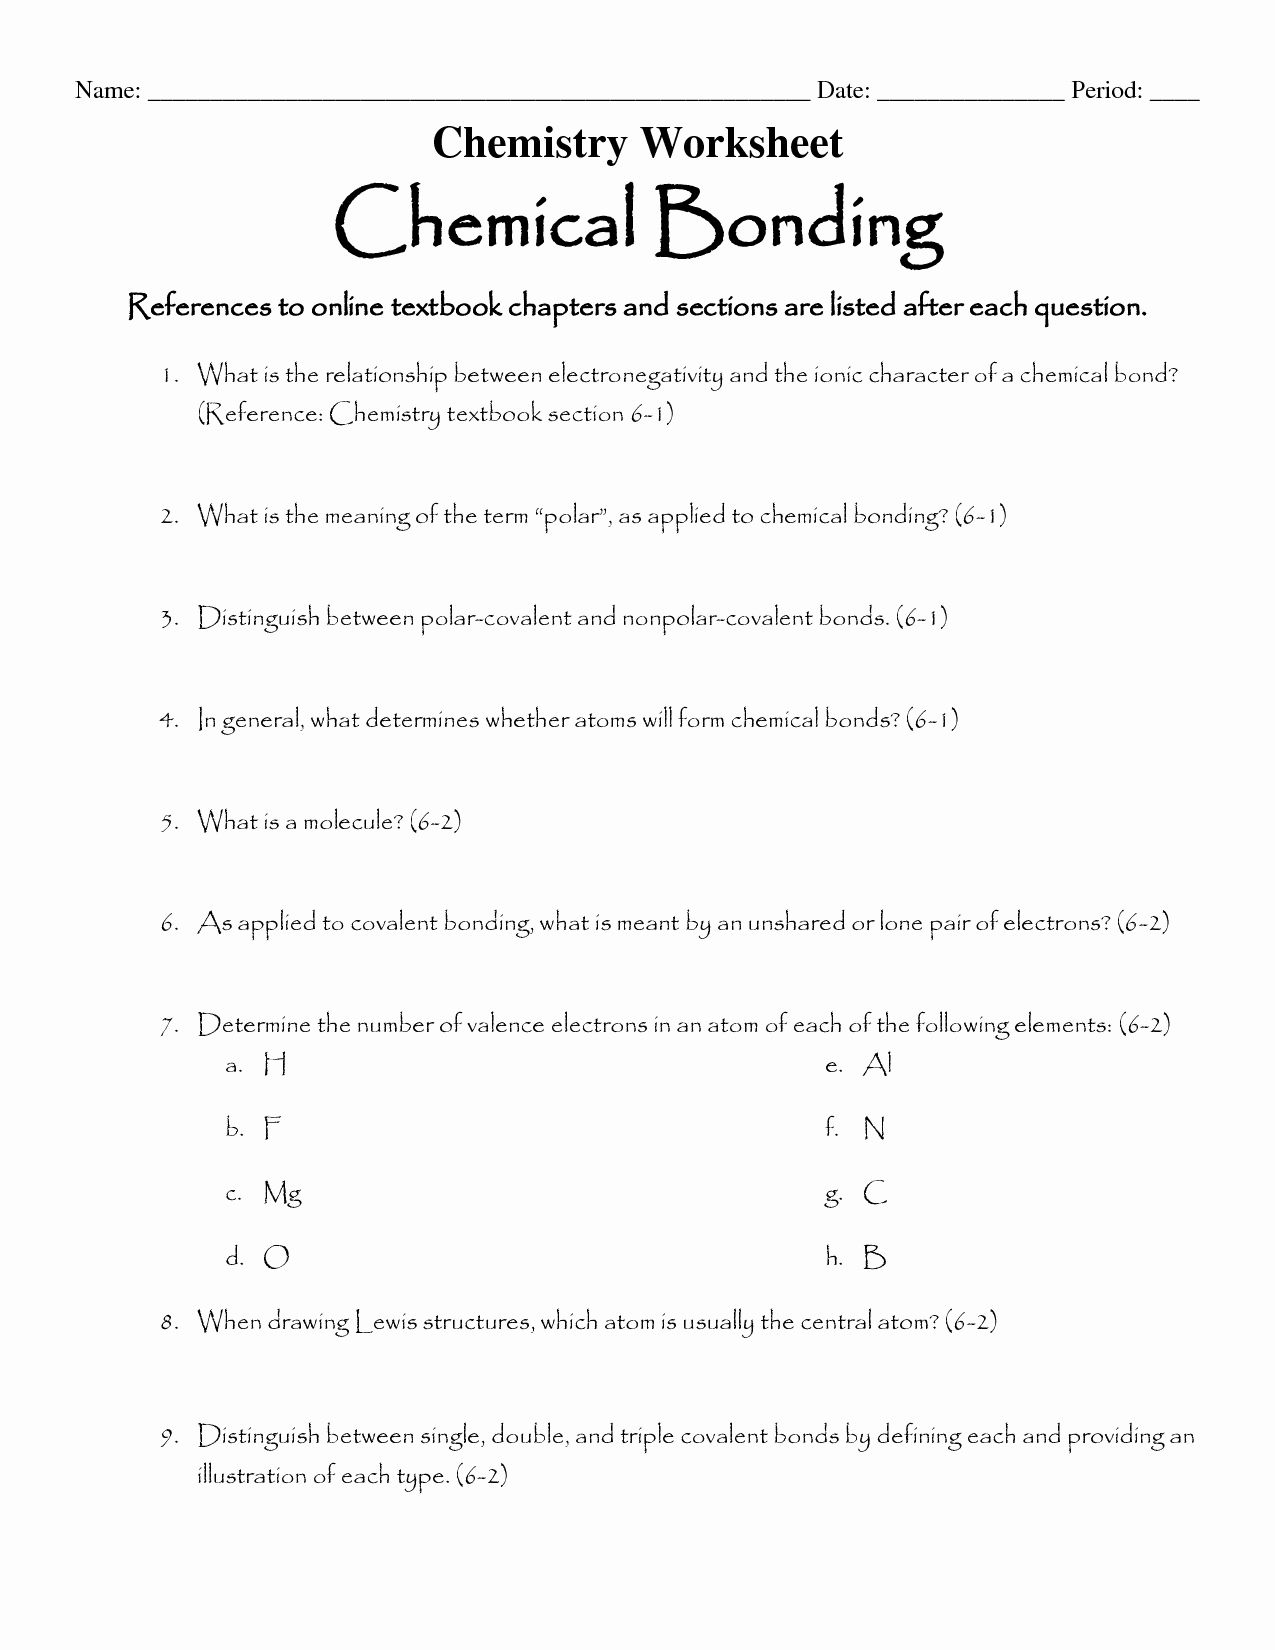 Covalent Bonding Worksheet Answer Key Unique 16 Best Of